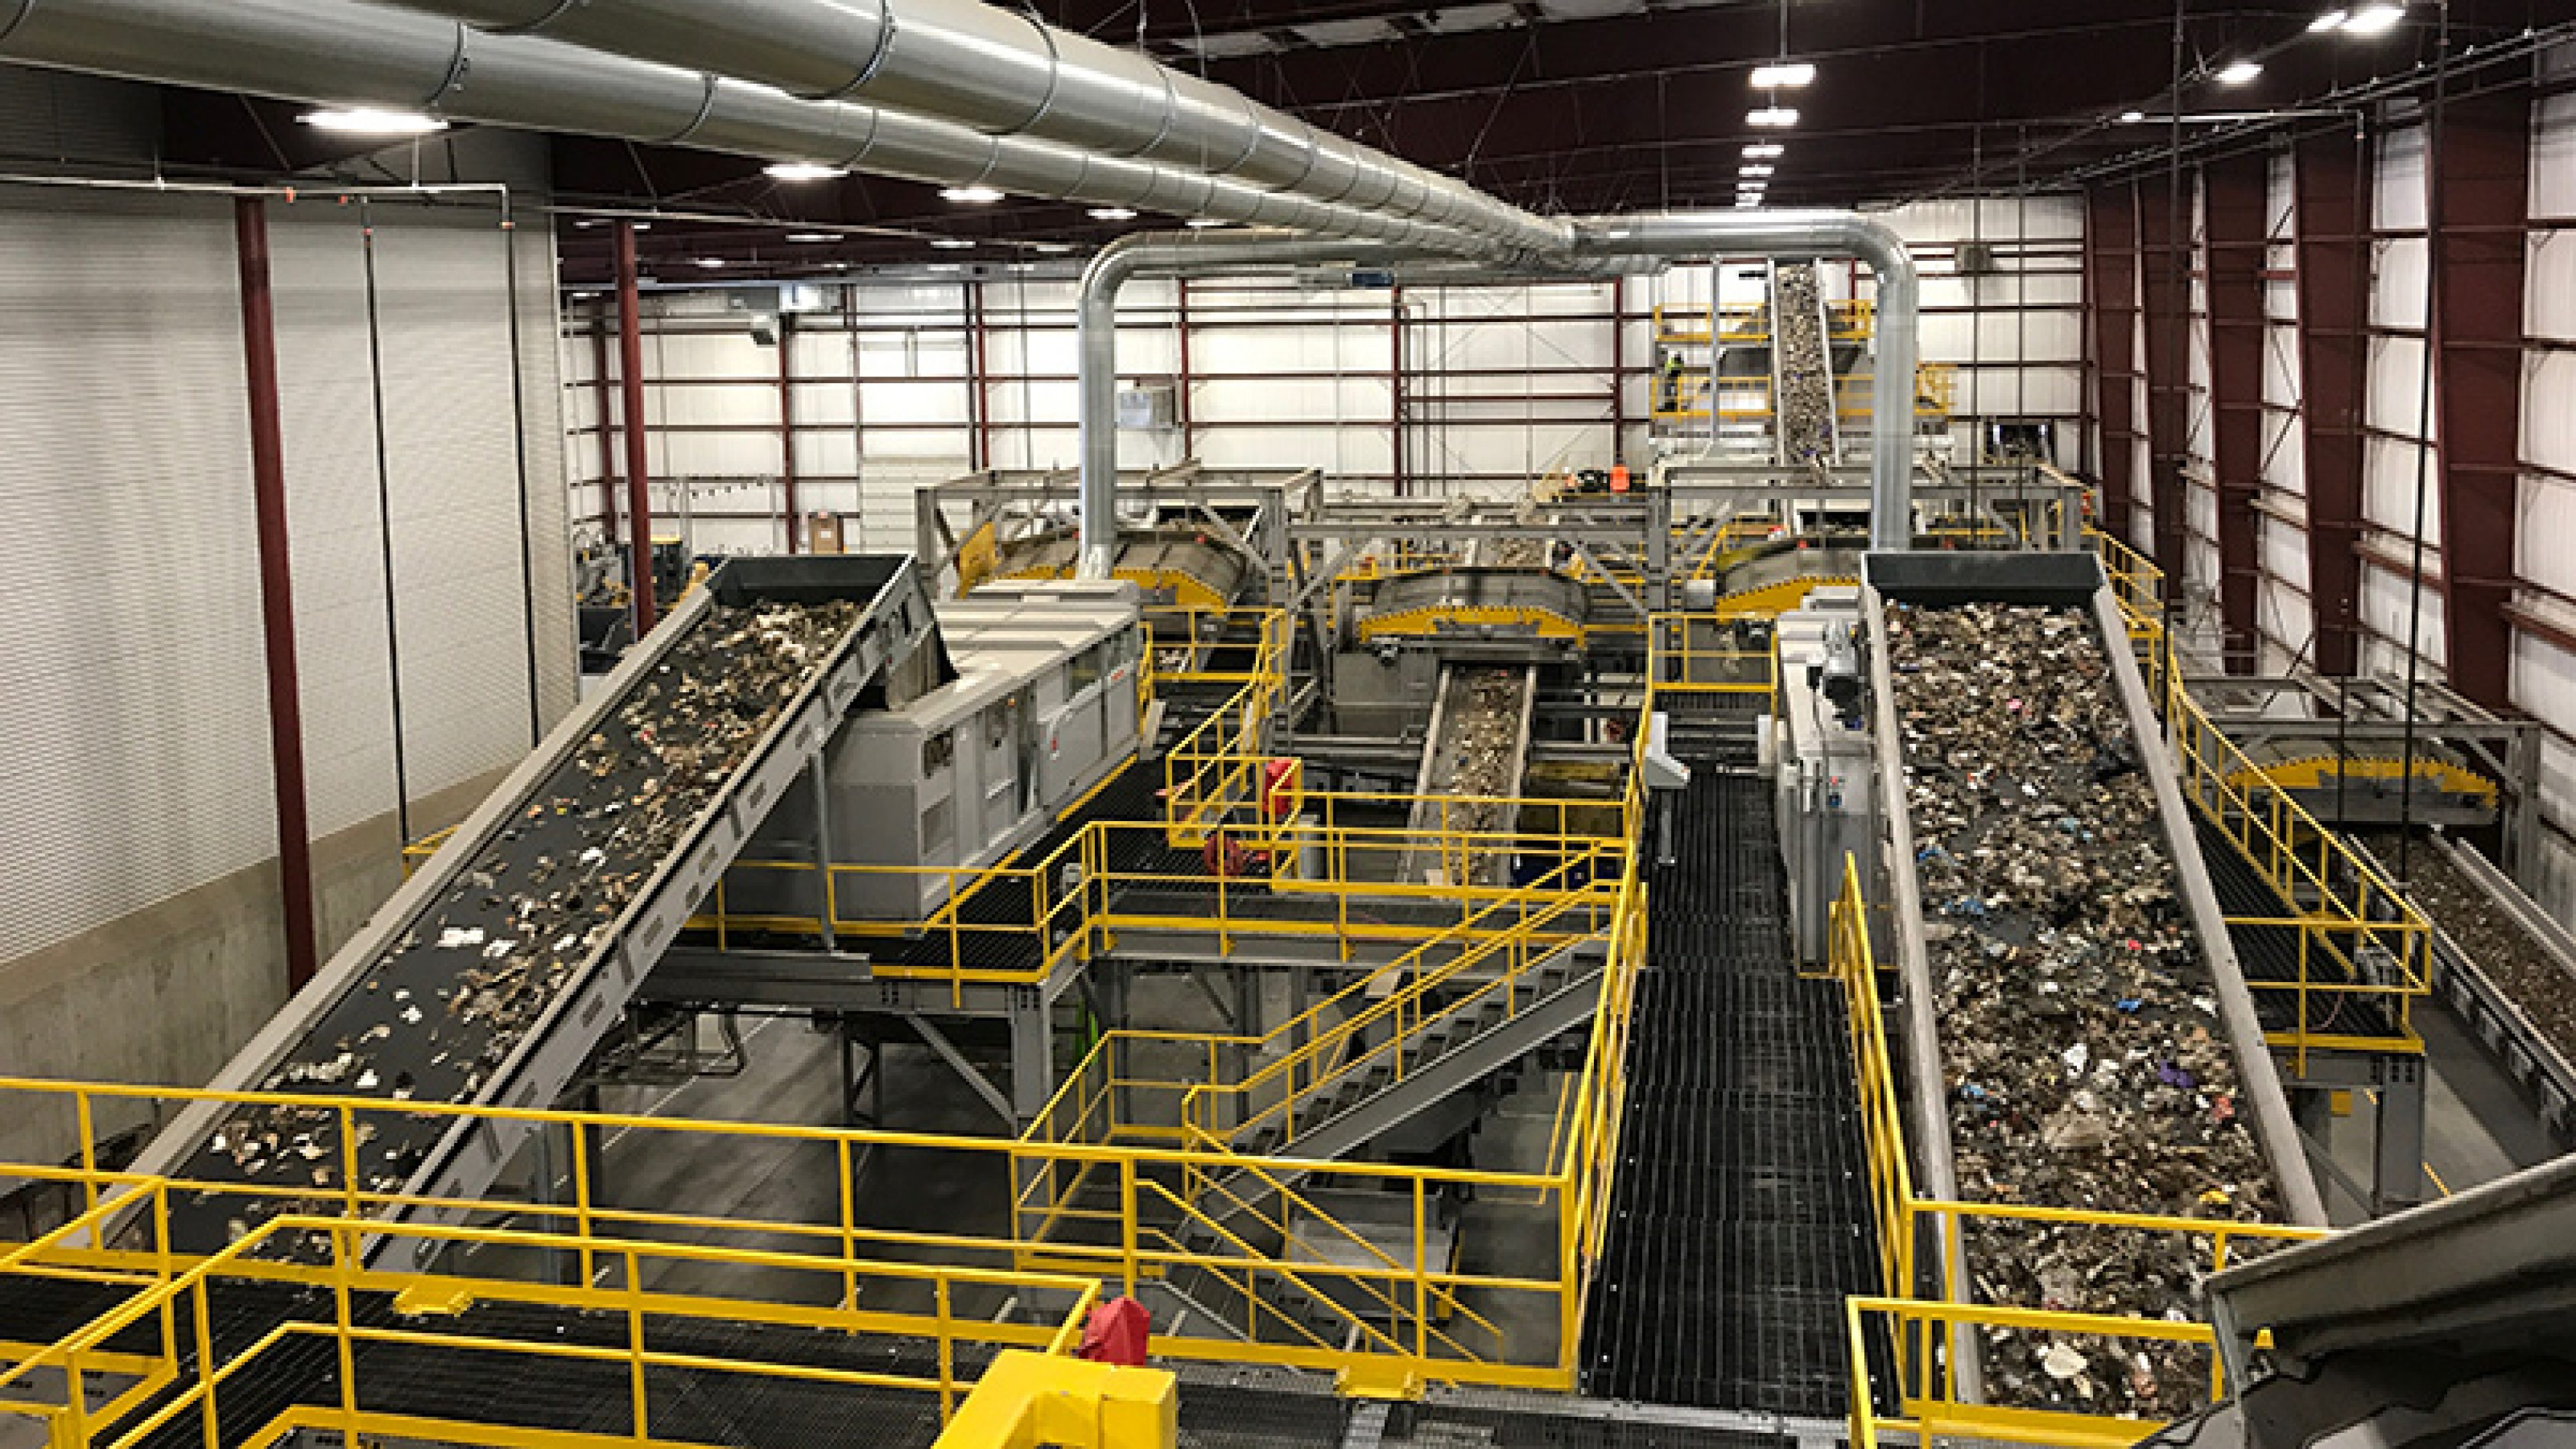 The Fulcrum Sierra plant that converts waste to fuel